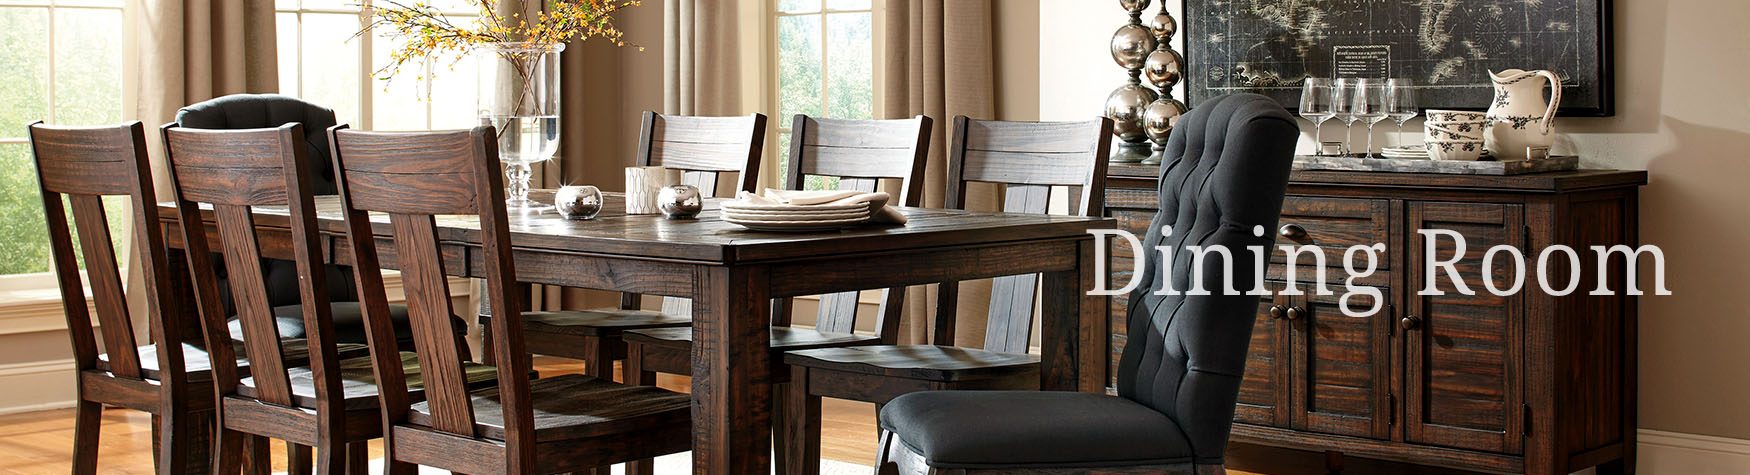 dining room furniture on sale near ft bragg in fayetteville